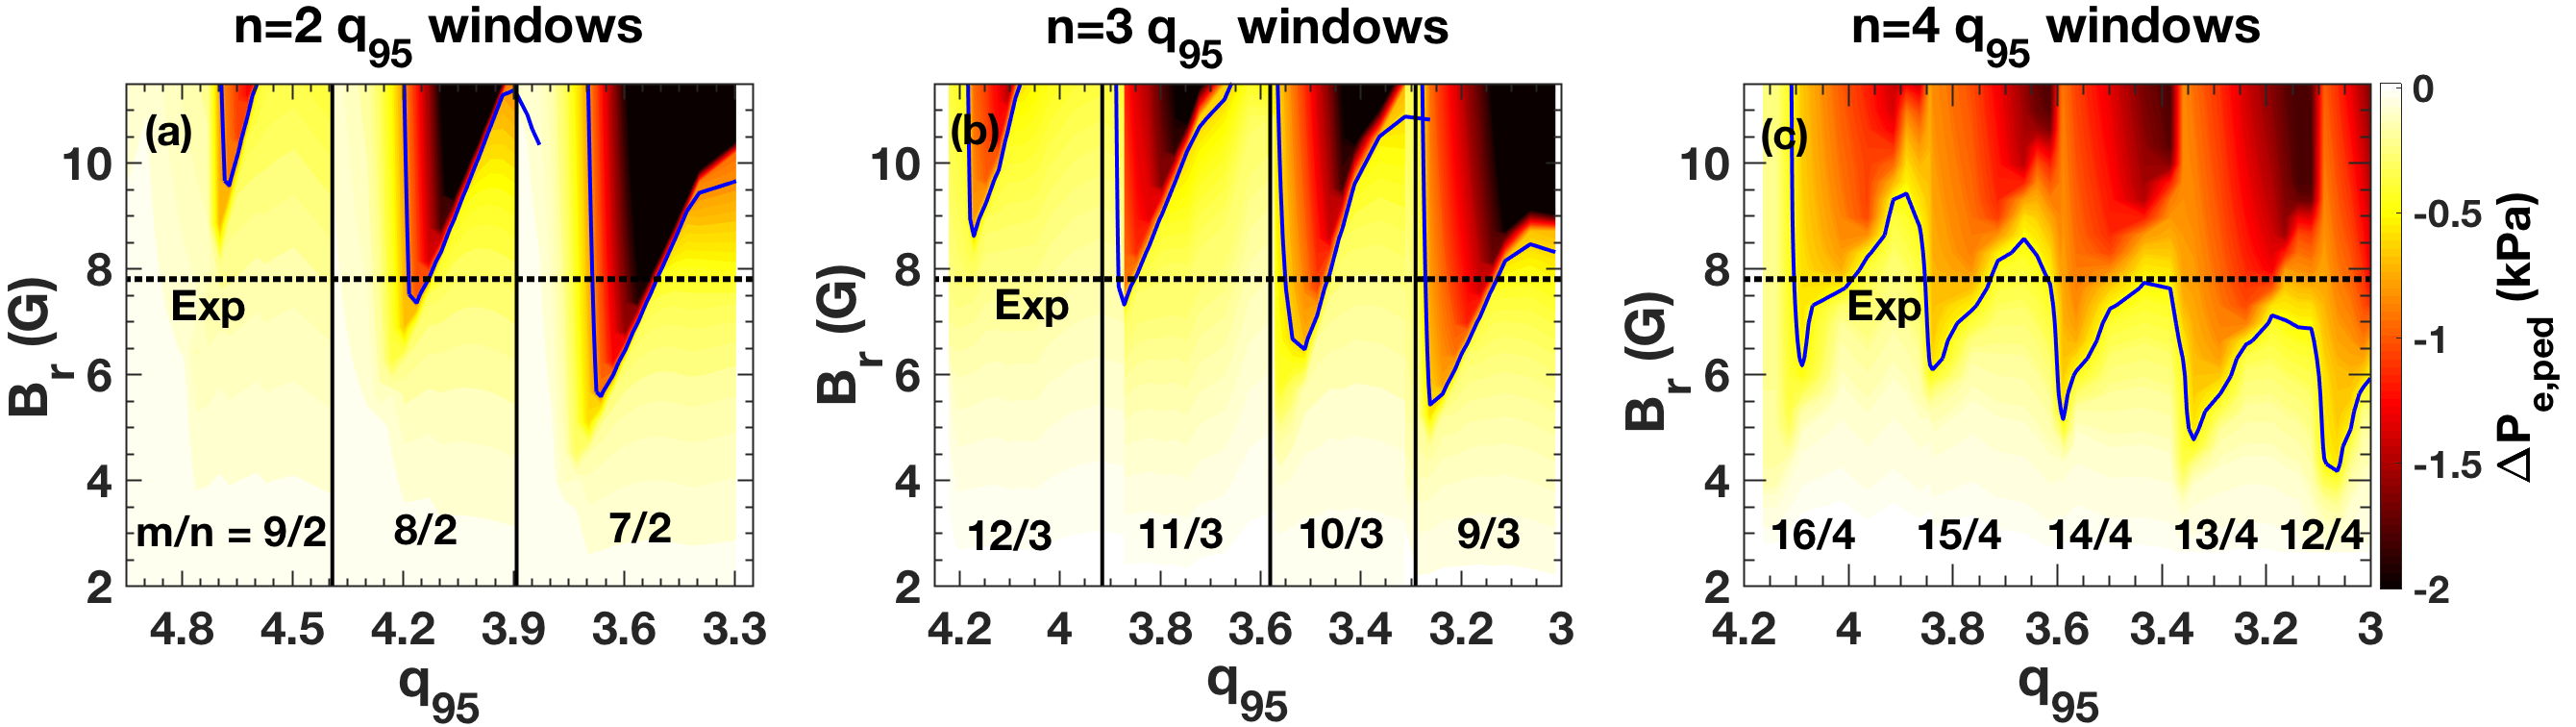 TM1 predicted $q_{95}$ windows of ELM suppression for (a) $n=2$, (b) $n=3$ and (c) $n=4$ RMPs in DIII-D. The pressure reduction (color contours) is shown vs $q_{95}$ and the applied RMP is given by the horizontal dashed line.